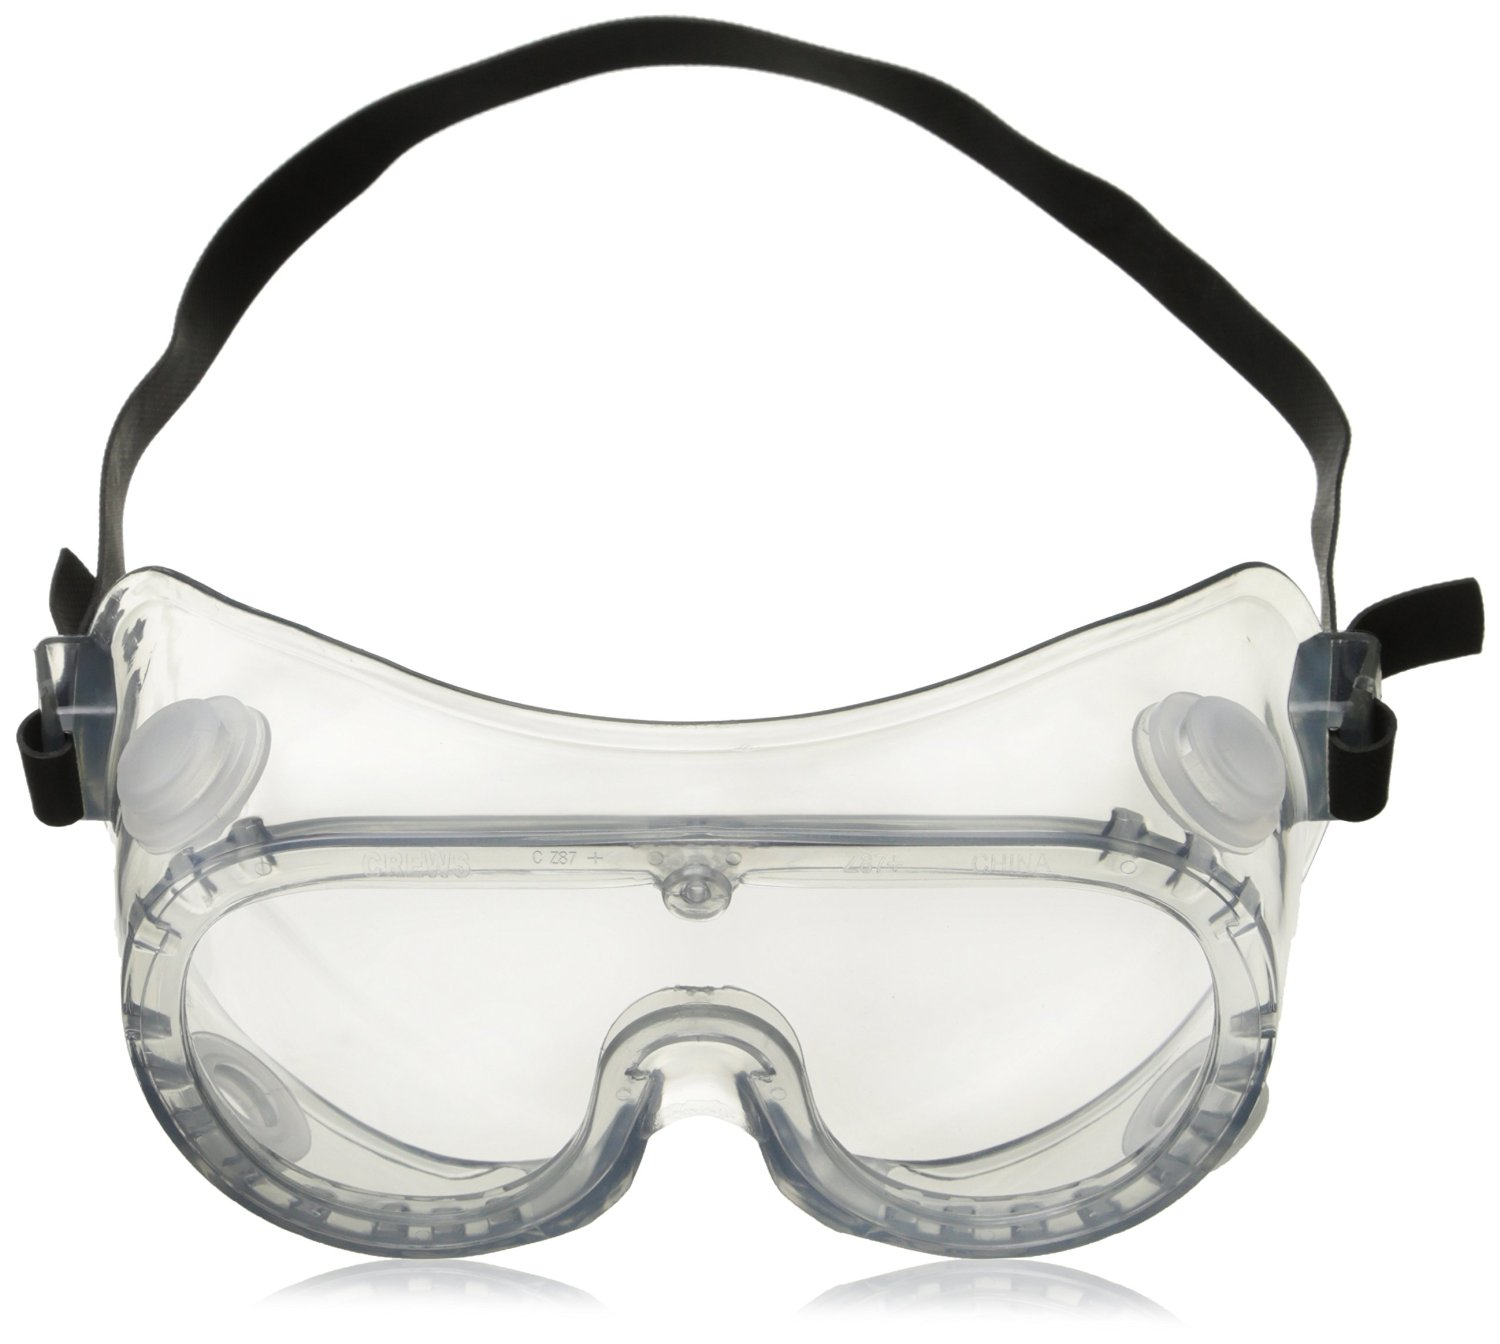 Chemical Splash Goggle with Indirect Ventilation and Adjustable Strap